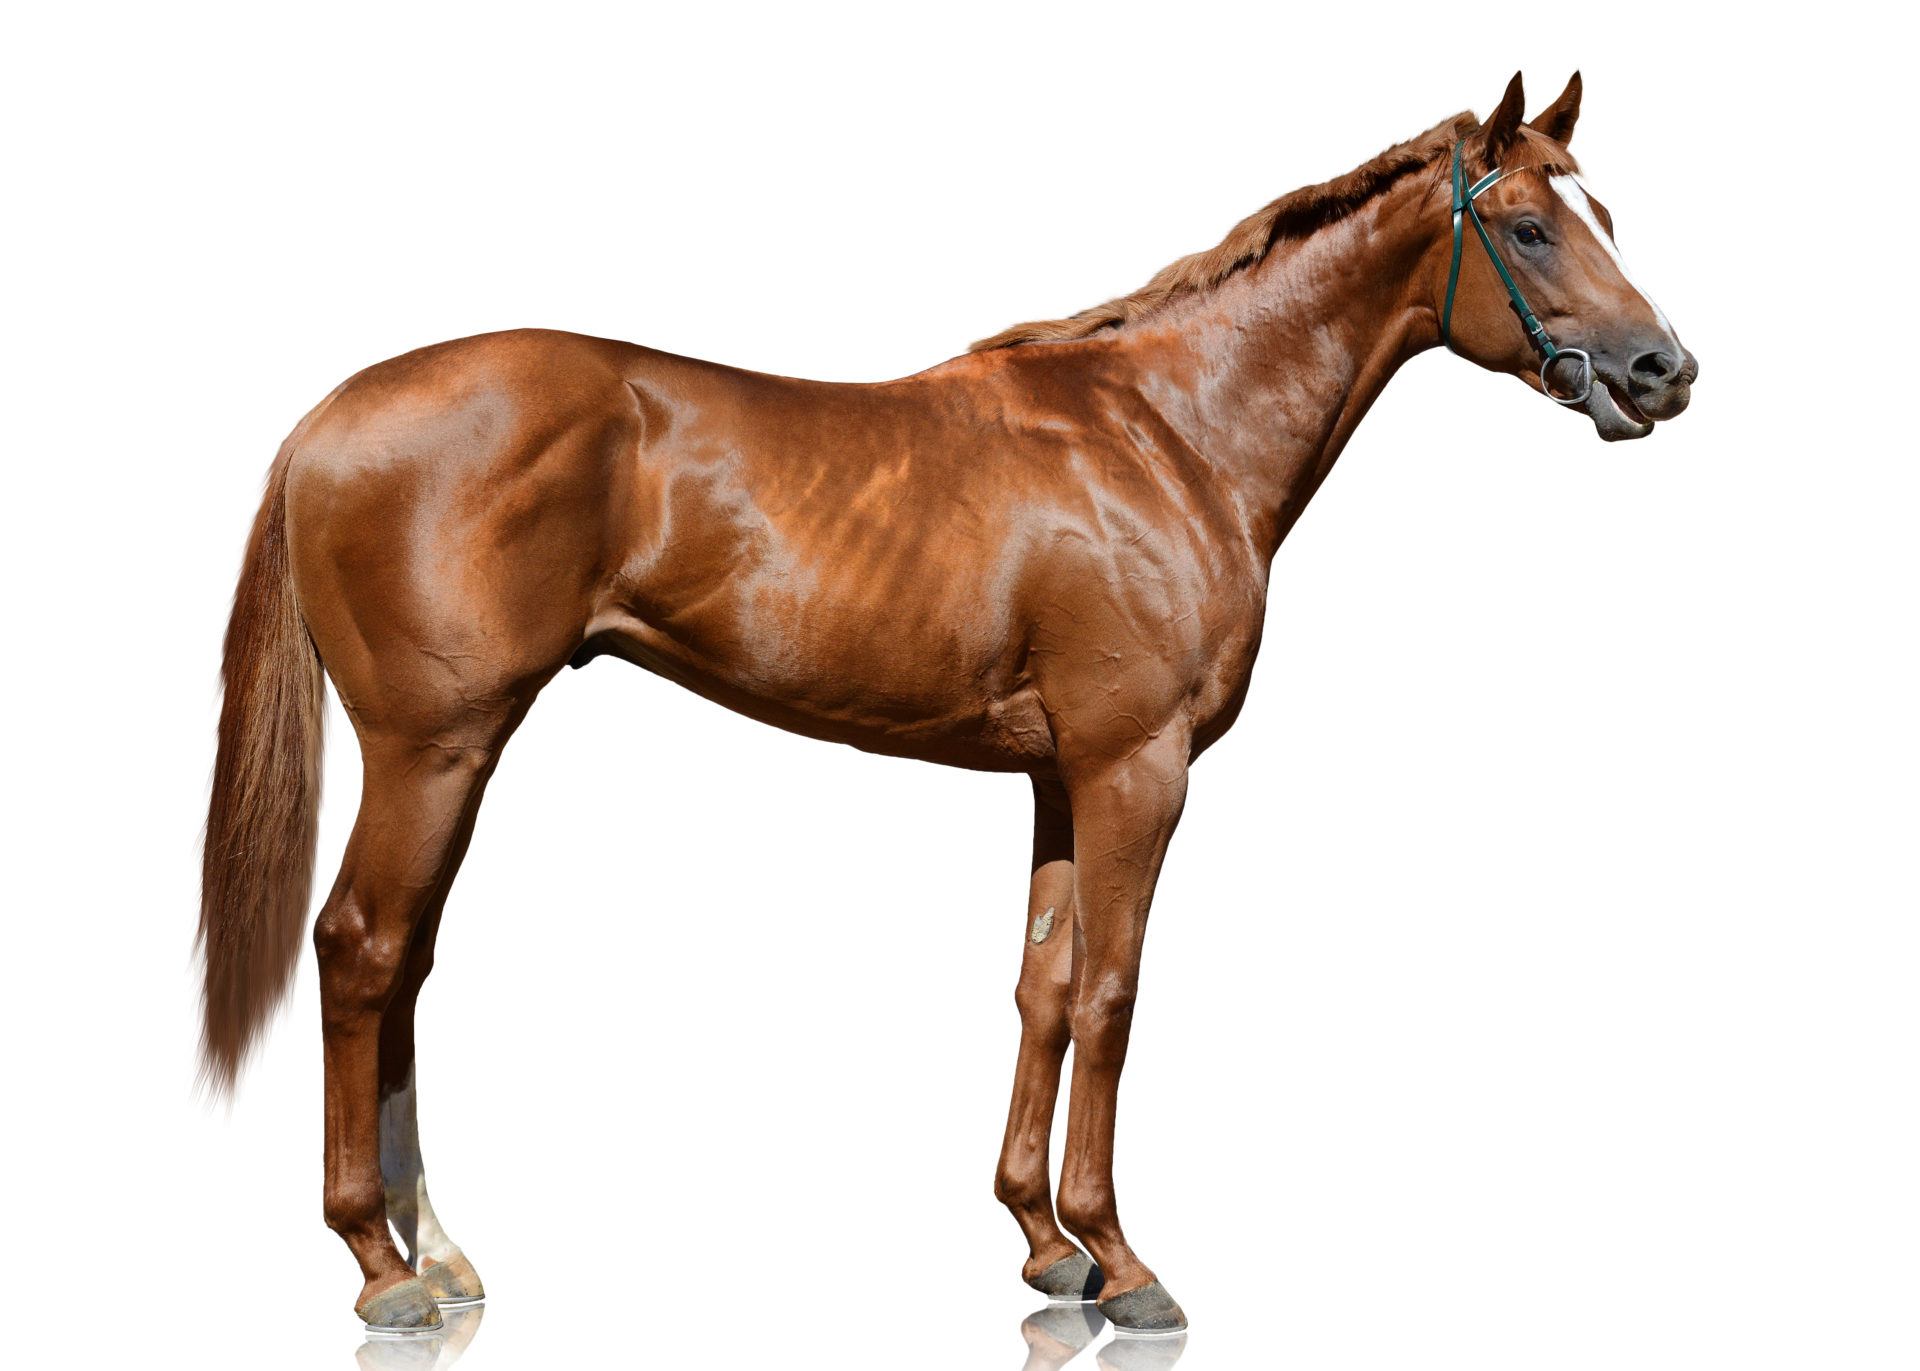 What is the best saddle for a thoroughbred?